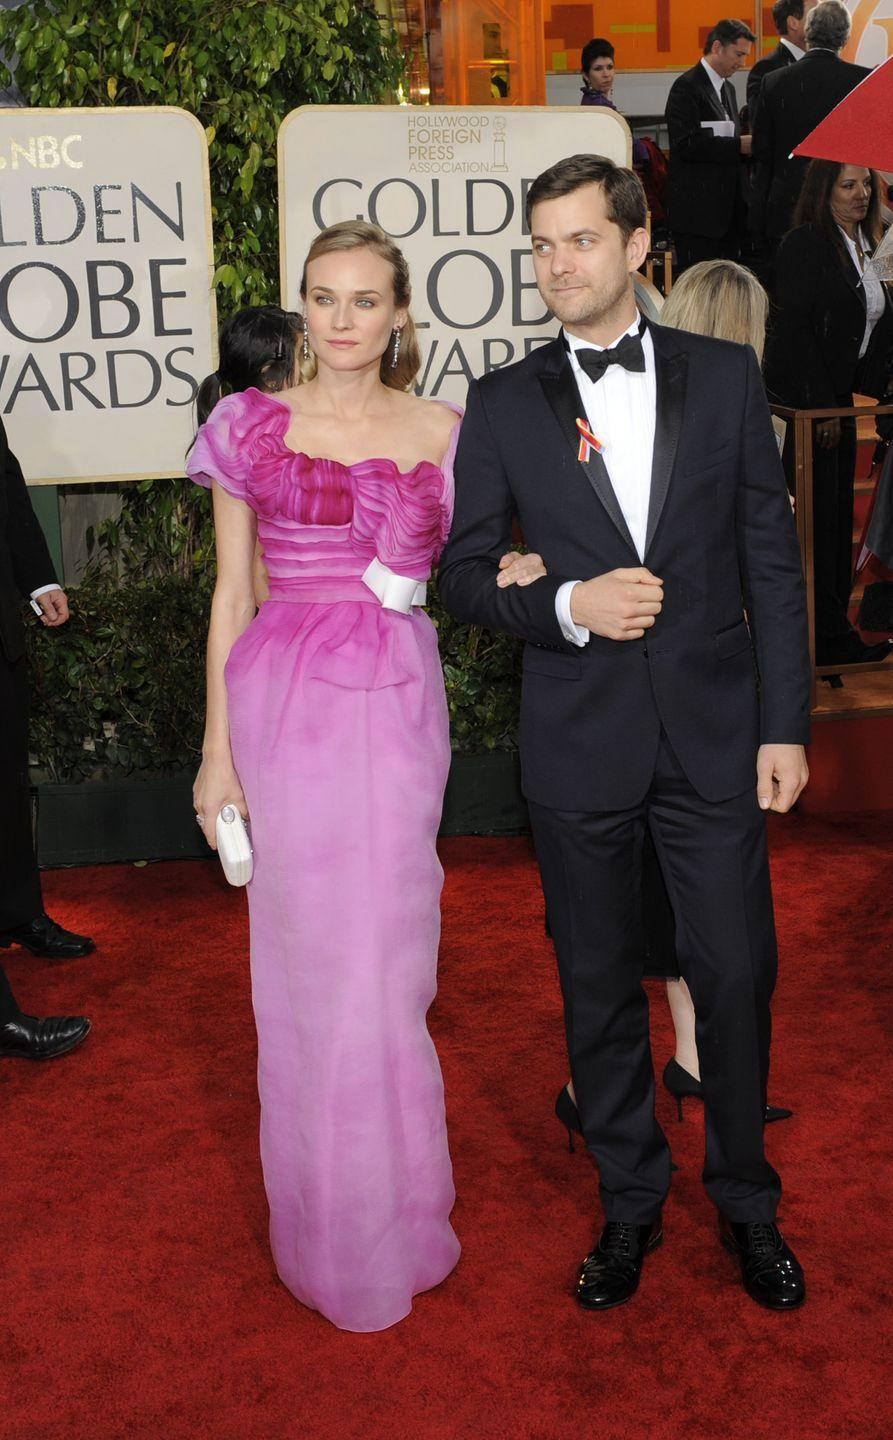 <p>Diane Kruger wore a pink ombre gown by Christian Lacroix in 2010.</p>